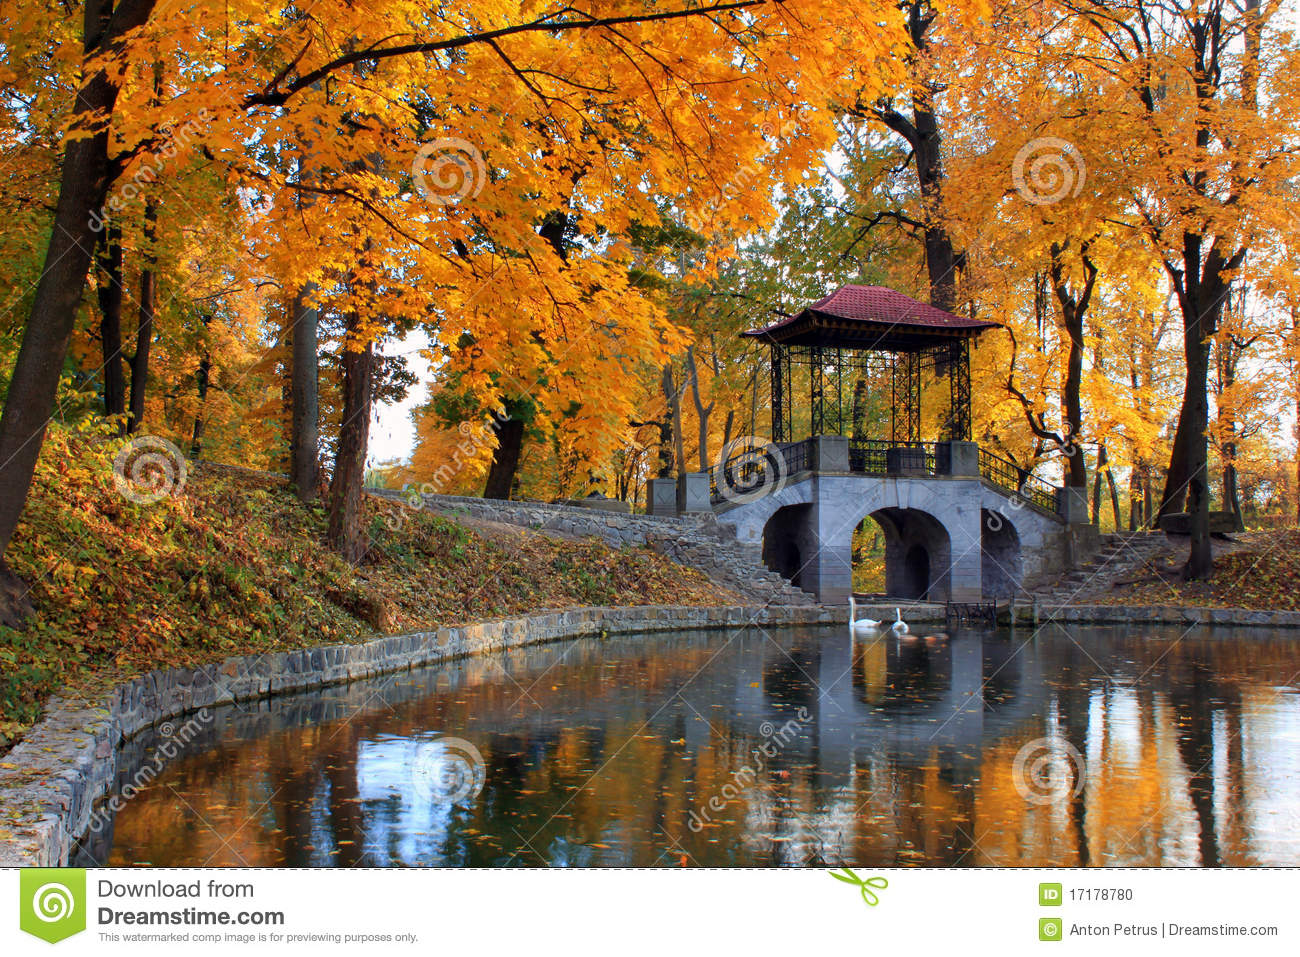 Bing Fall Desktop Wallpaper Autumn At The Japanese Park Stock Photo Image Of Tree